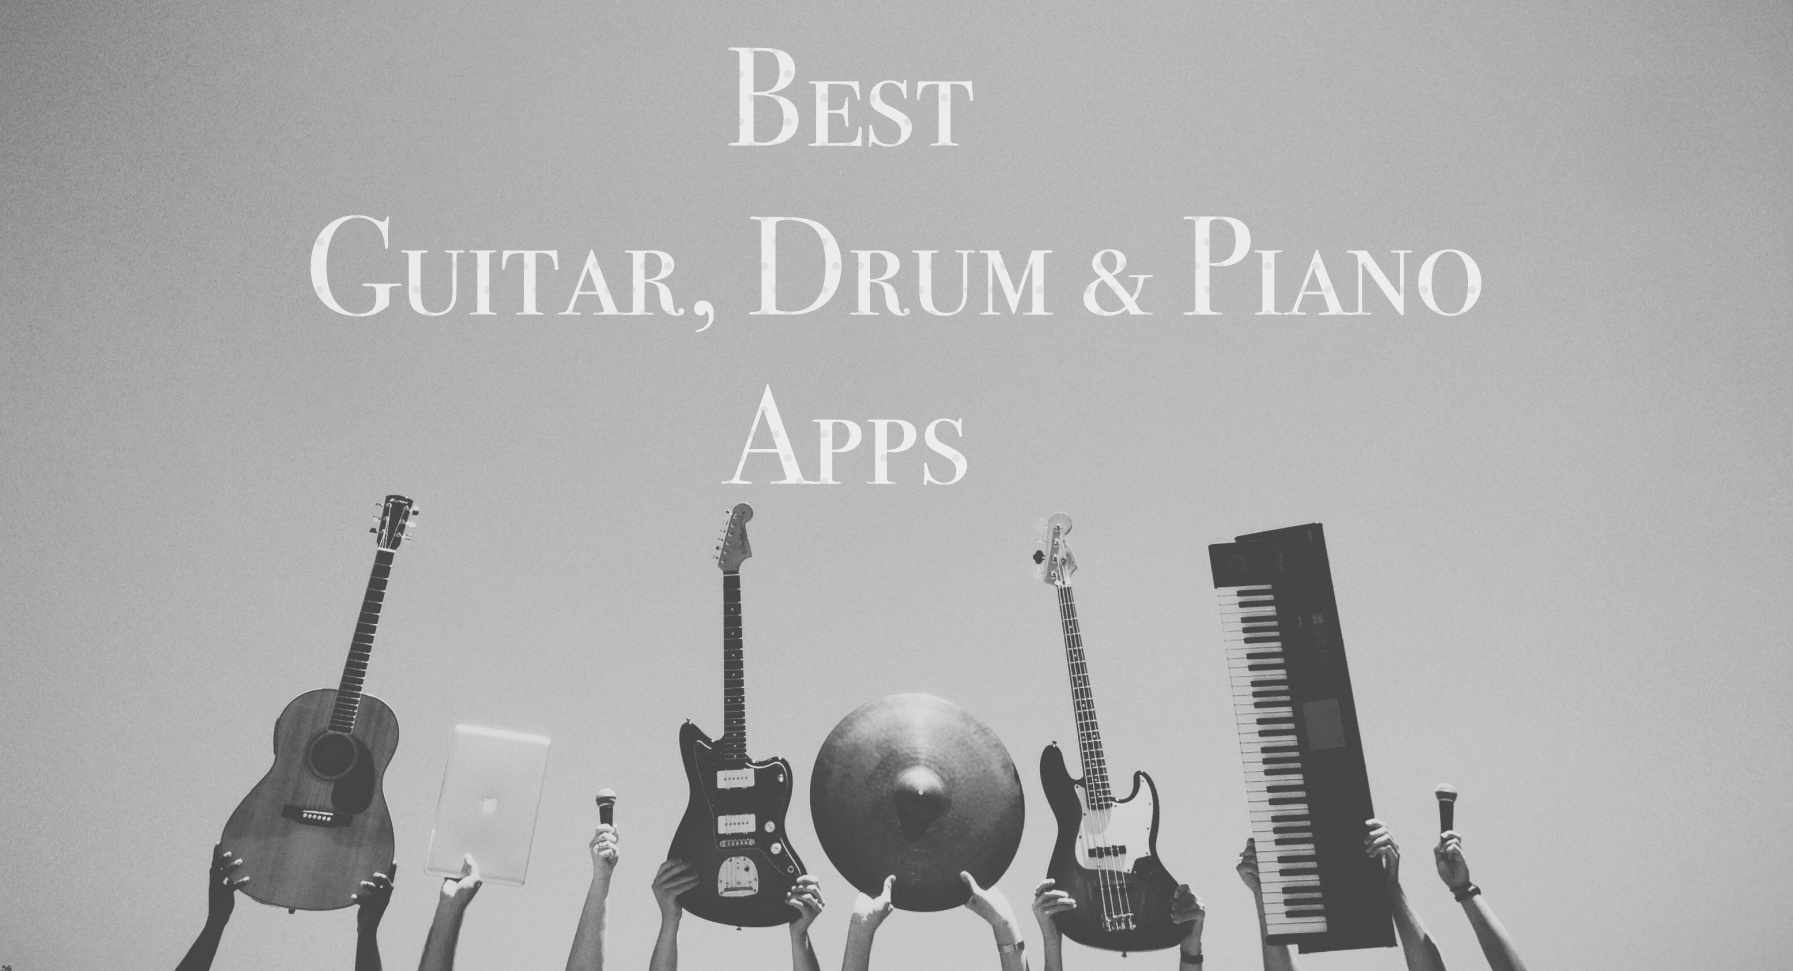 Best Guitar-Drums-Piano Apps for iPhone & iPad